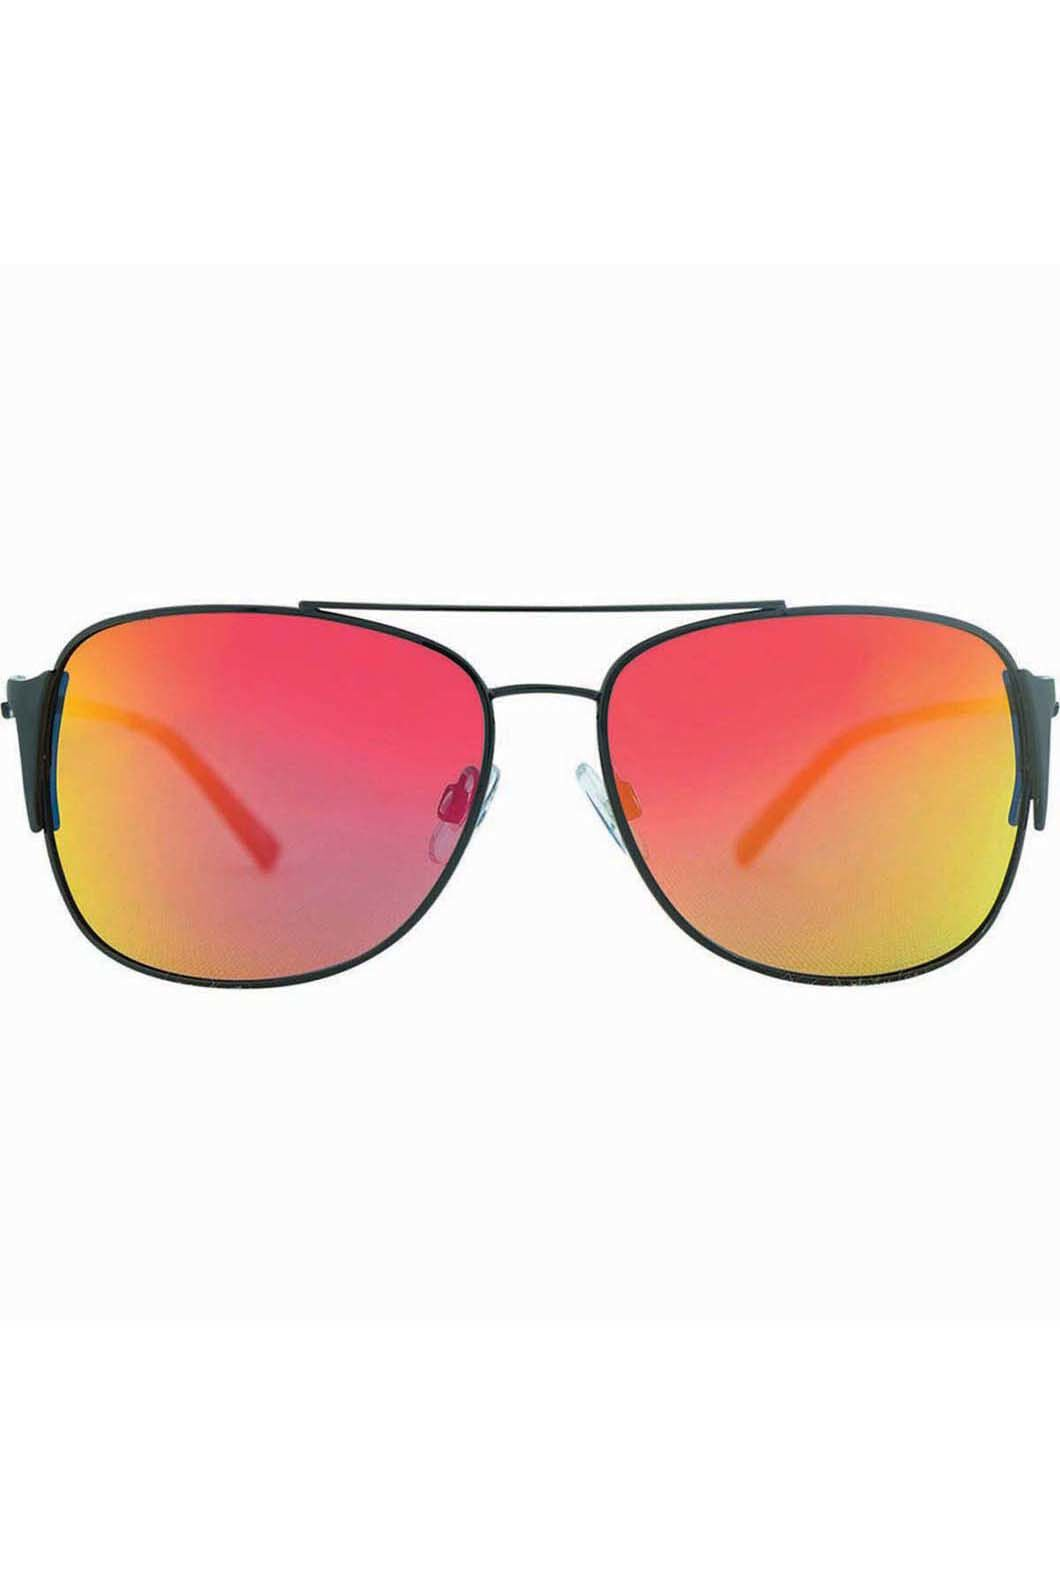 Venture Eyewear Men's Maverick Sunglasses, Black/Red, hi-res